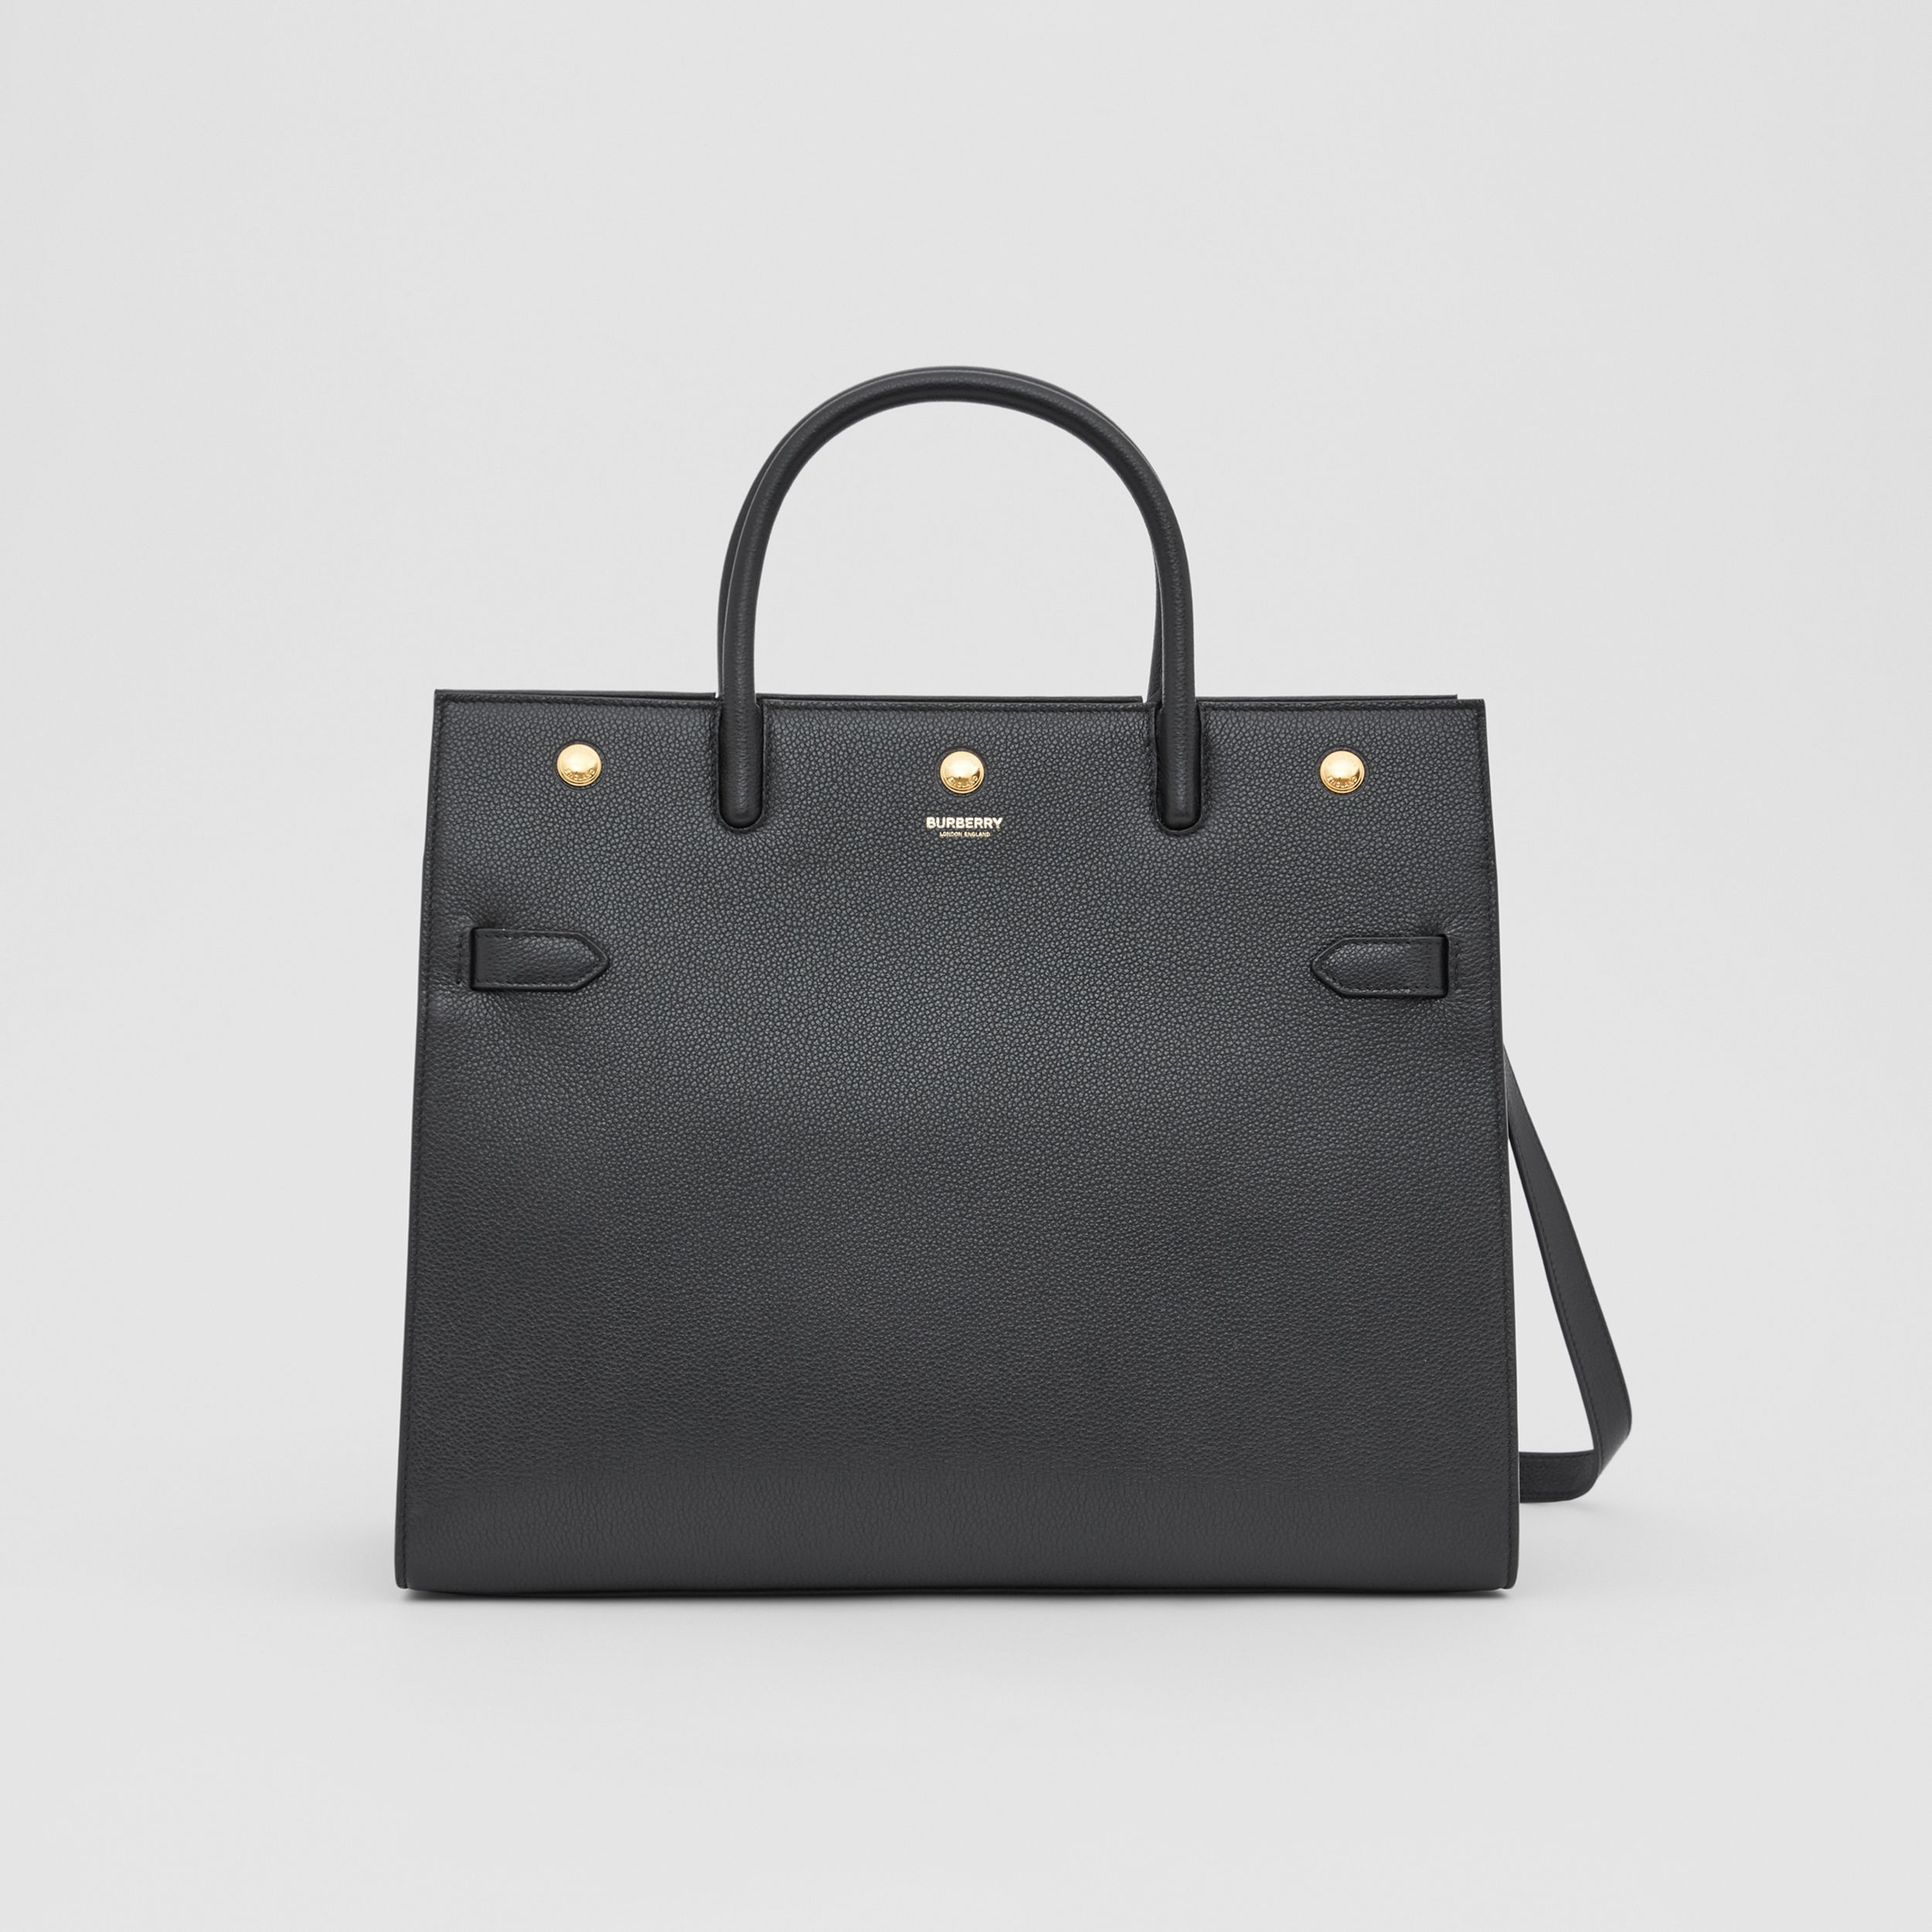 Medium Leather Two-handle Title Bag in Black - Women | Burberry Australia - 1